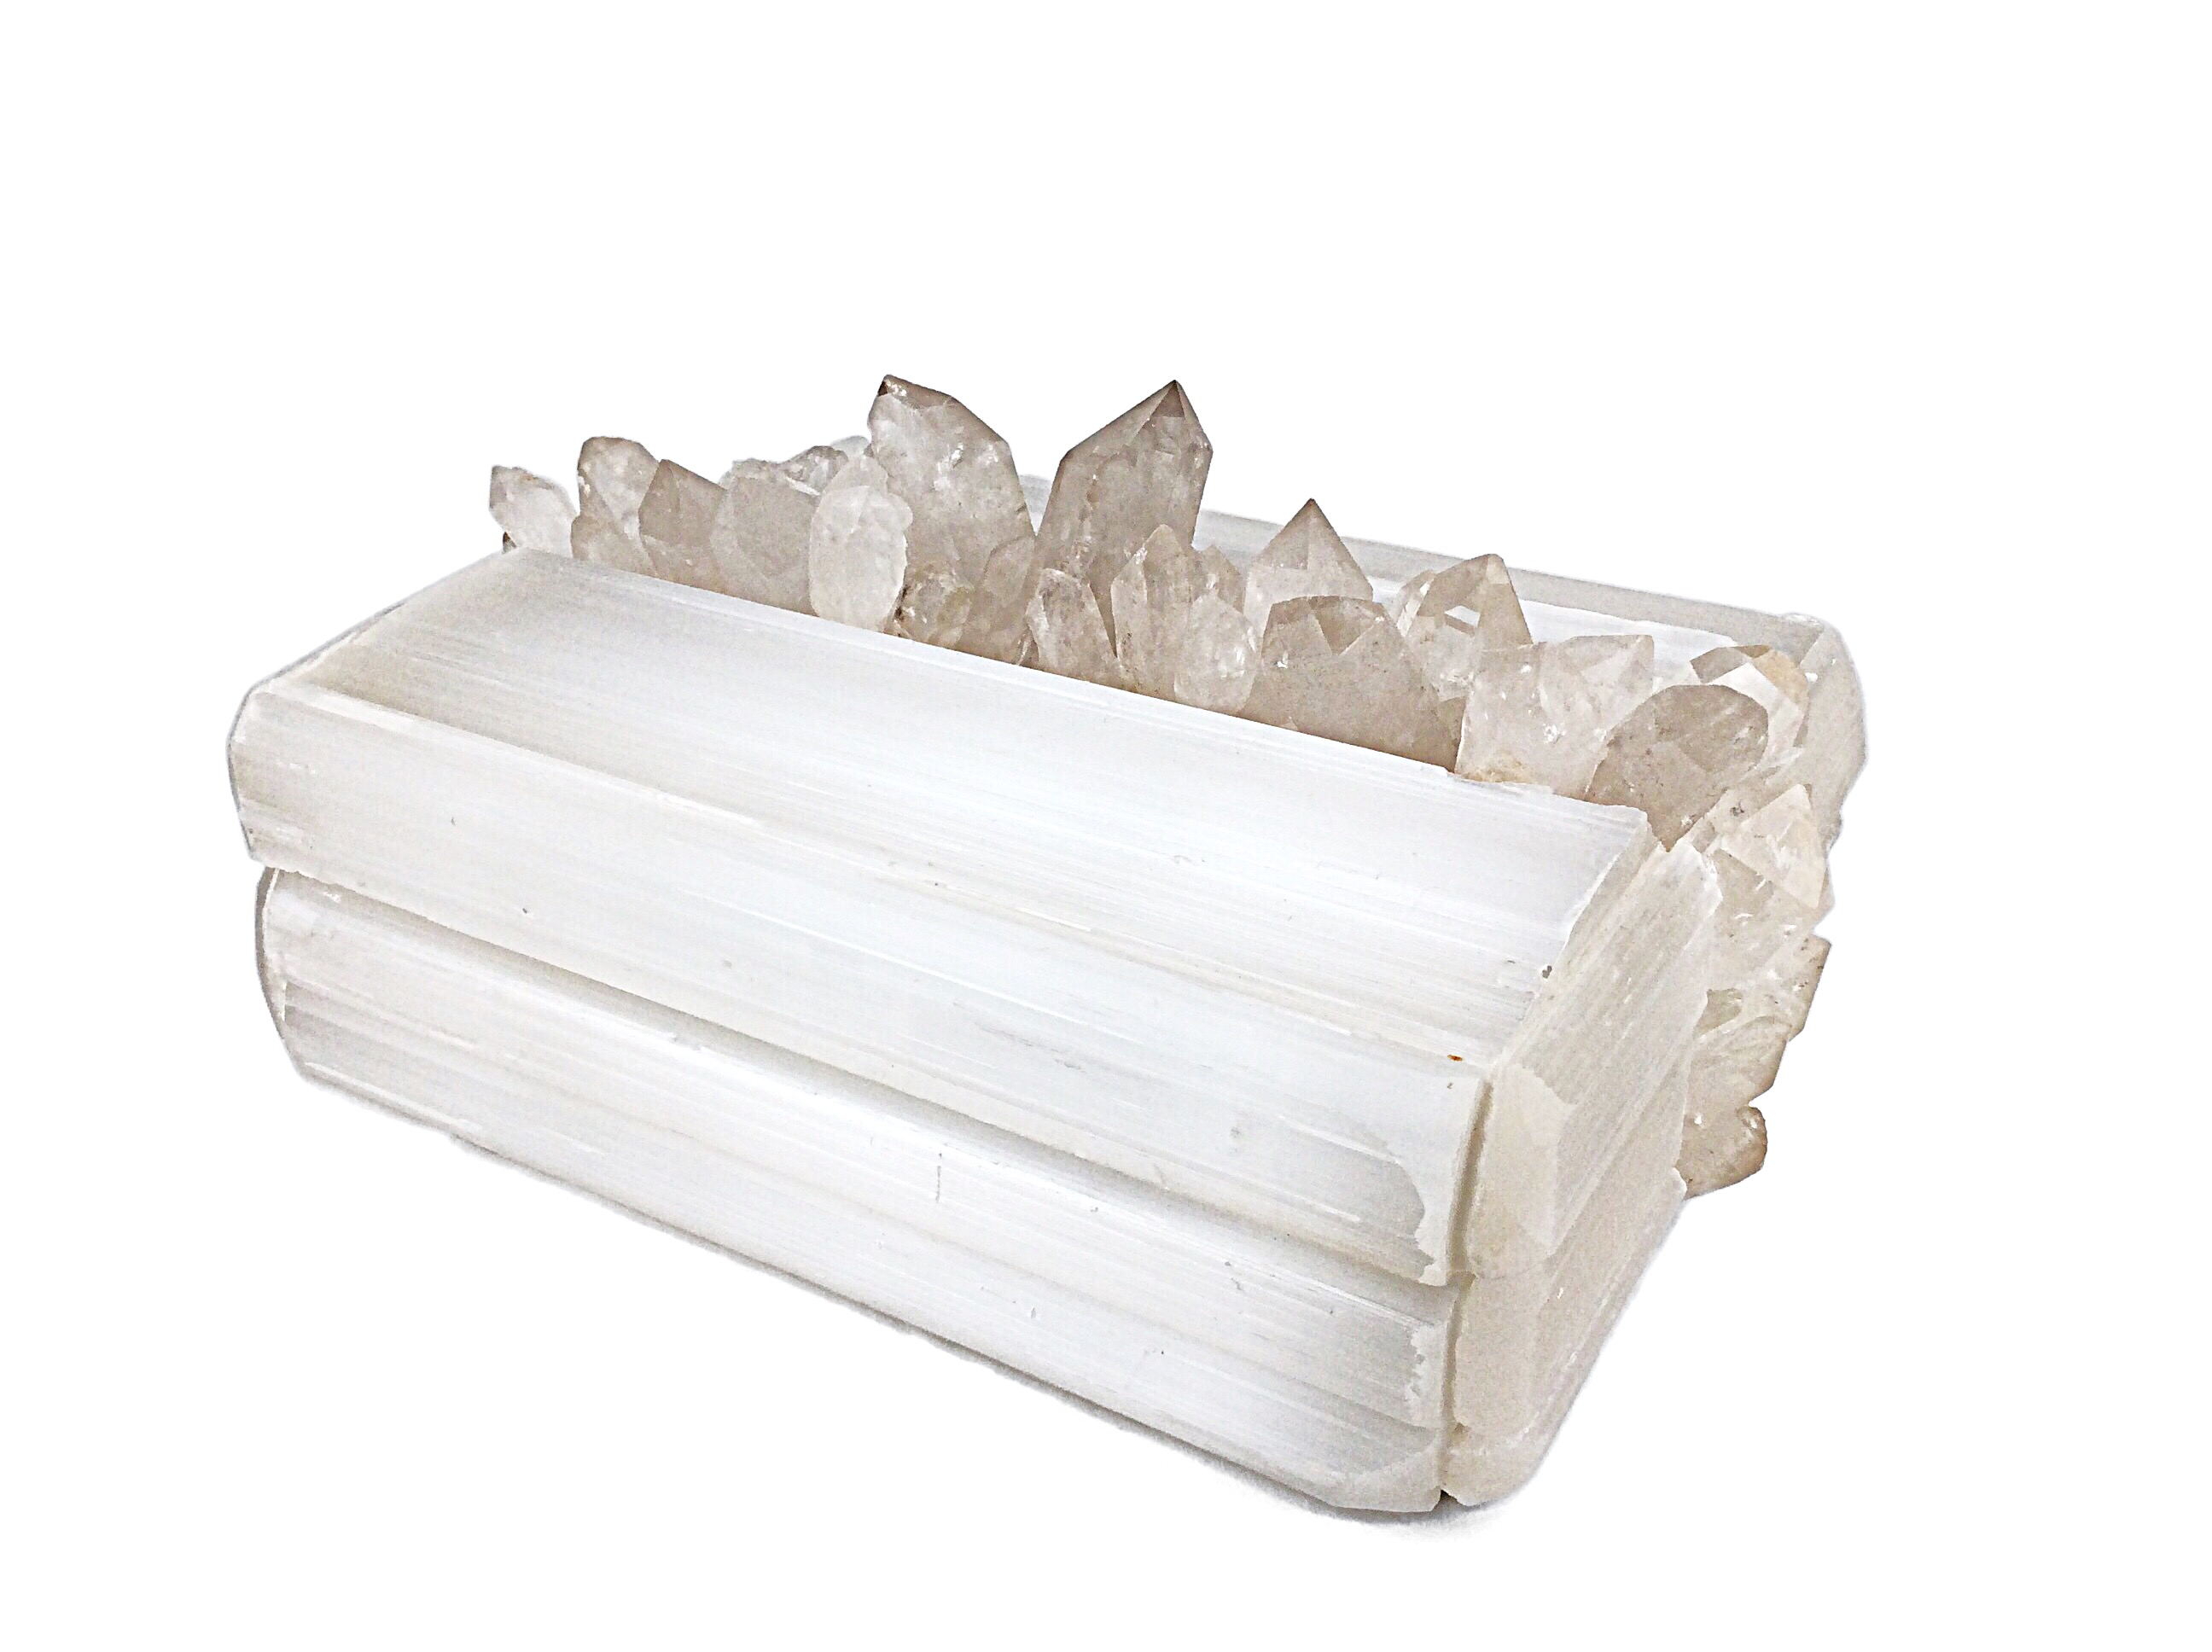 STRYPE - Selenite and Quartz Coffee Table Box